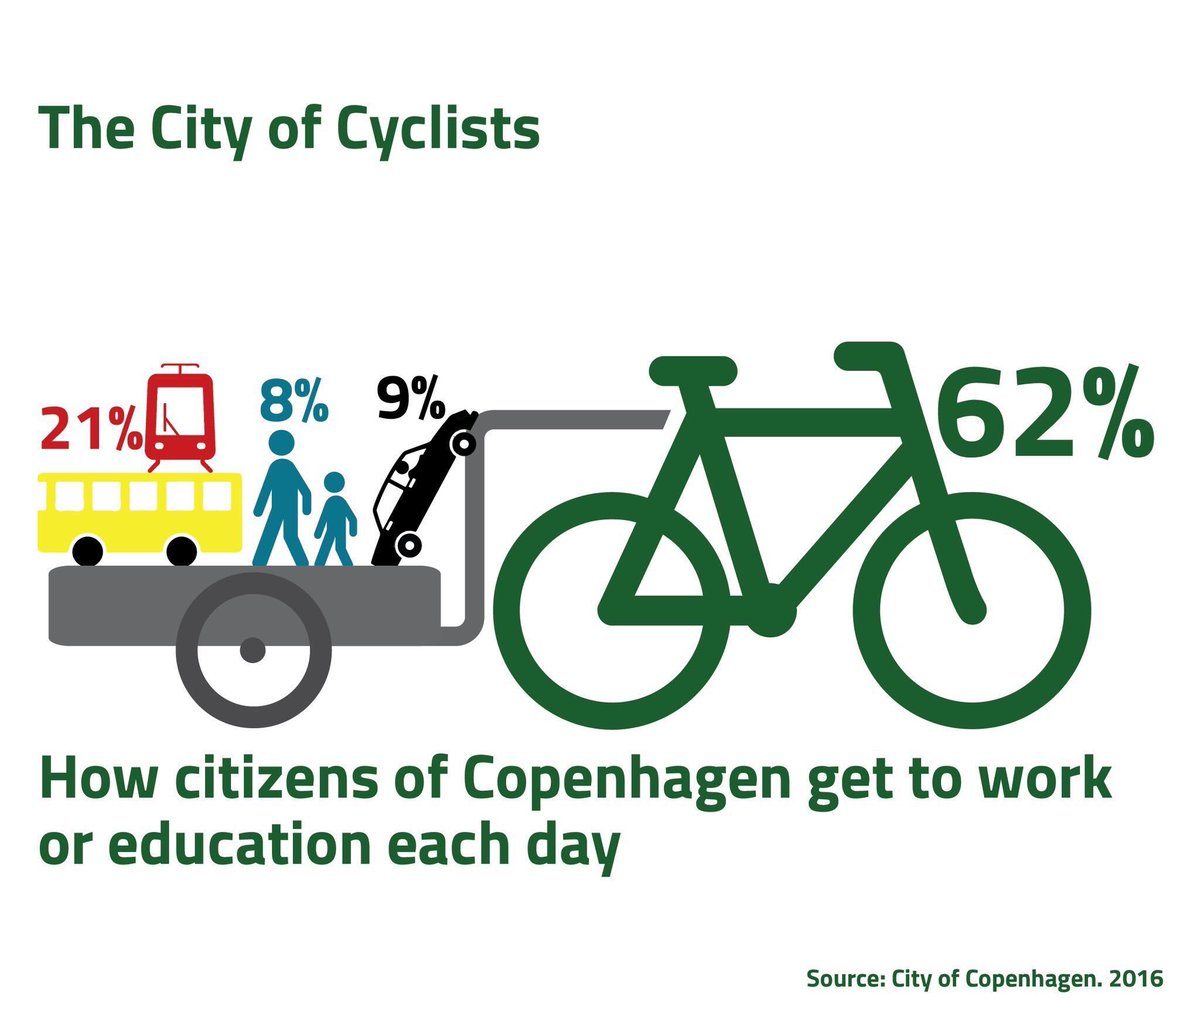 62% of #Copenhagen citizens bike to work or education each day. Because they've designed a city where biking is the easiest, most logical choice. Via @anderspreben https://t.co/sqWbXhle00